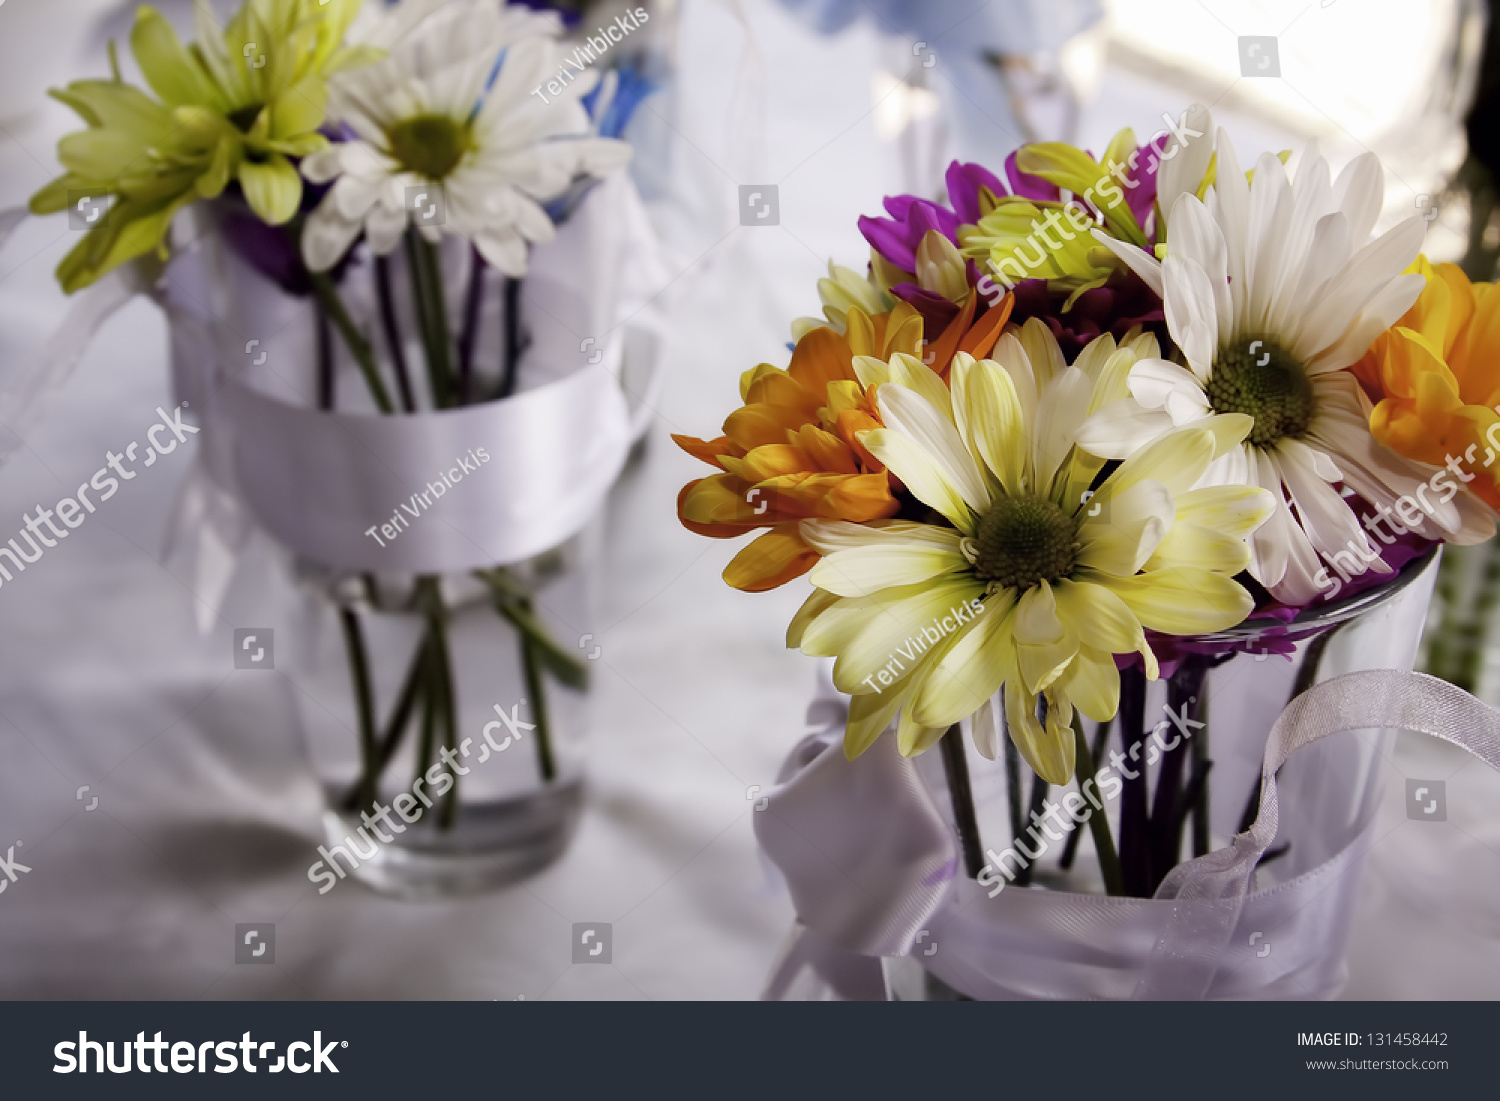 Wedding Flowers Used Glass Vases On Stock Photo Edit Now 131458442